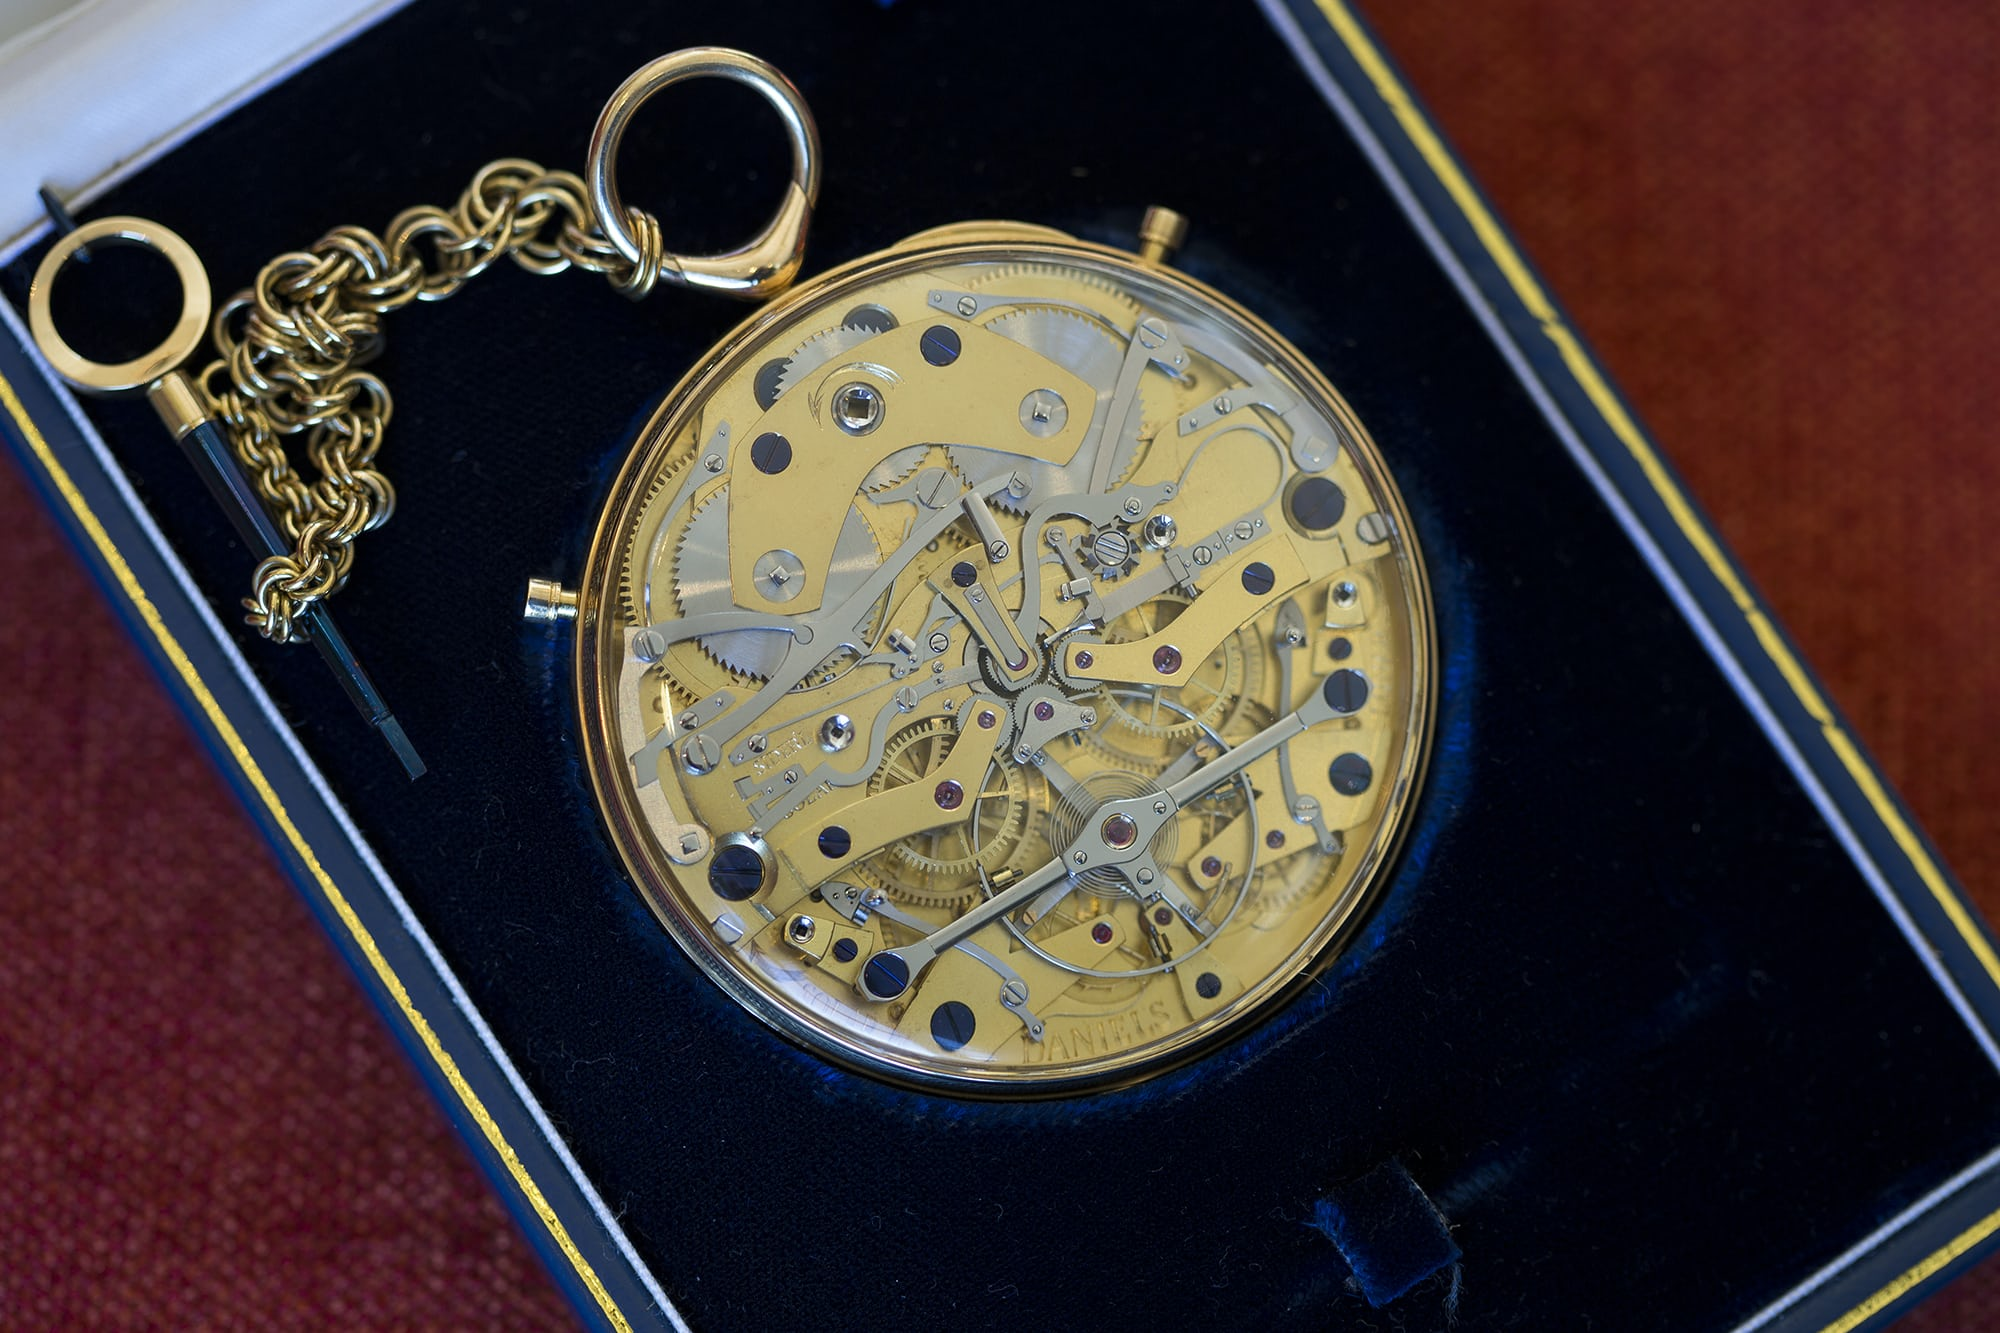 george daniels space traveller movement breaking news: the george daniels space traveller pocket watch sells for $4.3 million at sotheby's london Breaking News: The George Daniels Space Traveller Pocket Watch Sells For $4.3 Million At Sotheby's London 20010449 copy